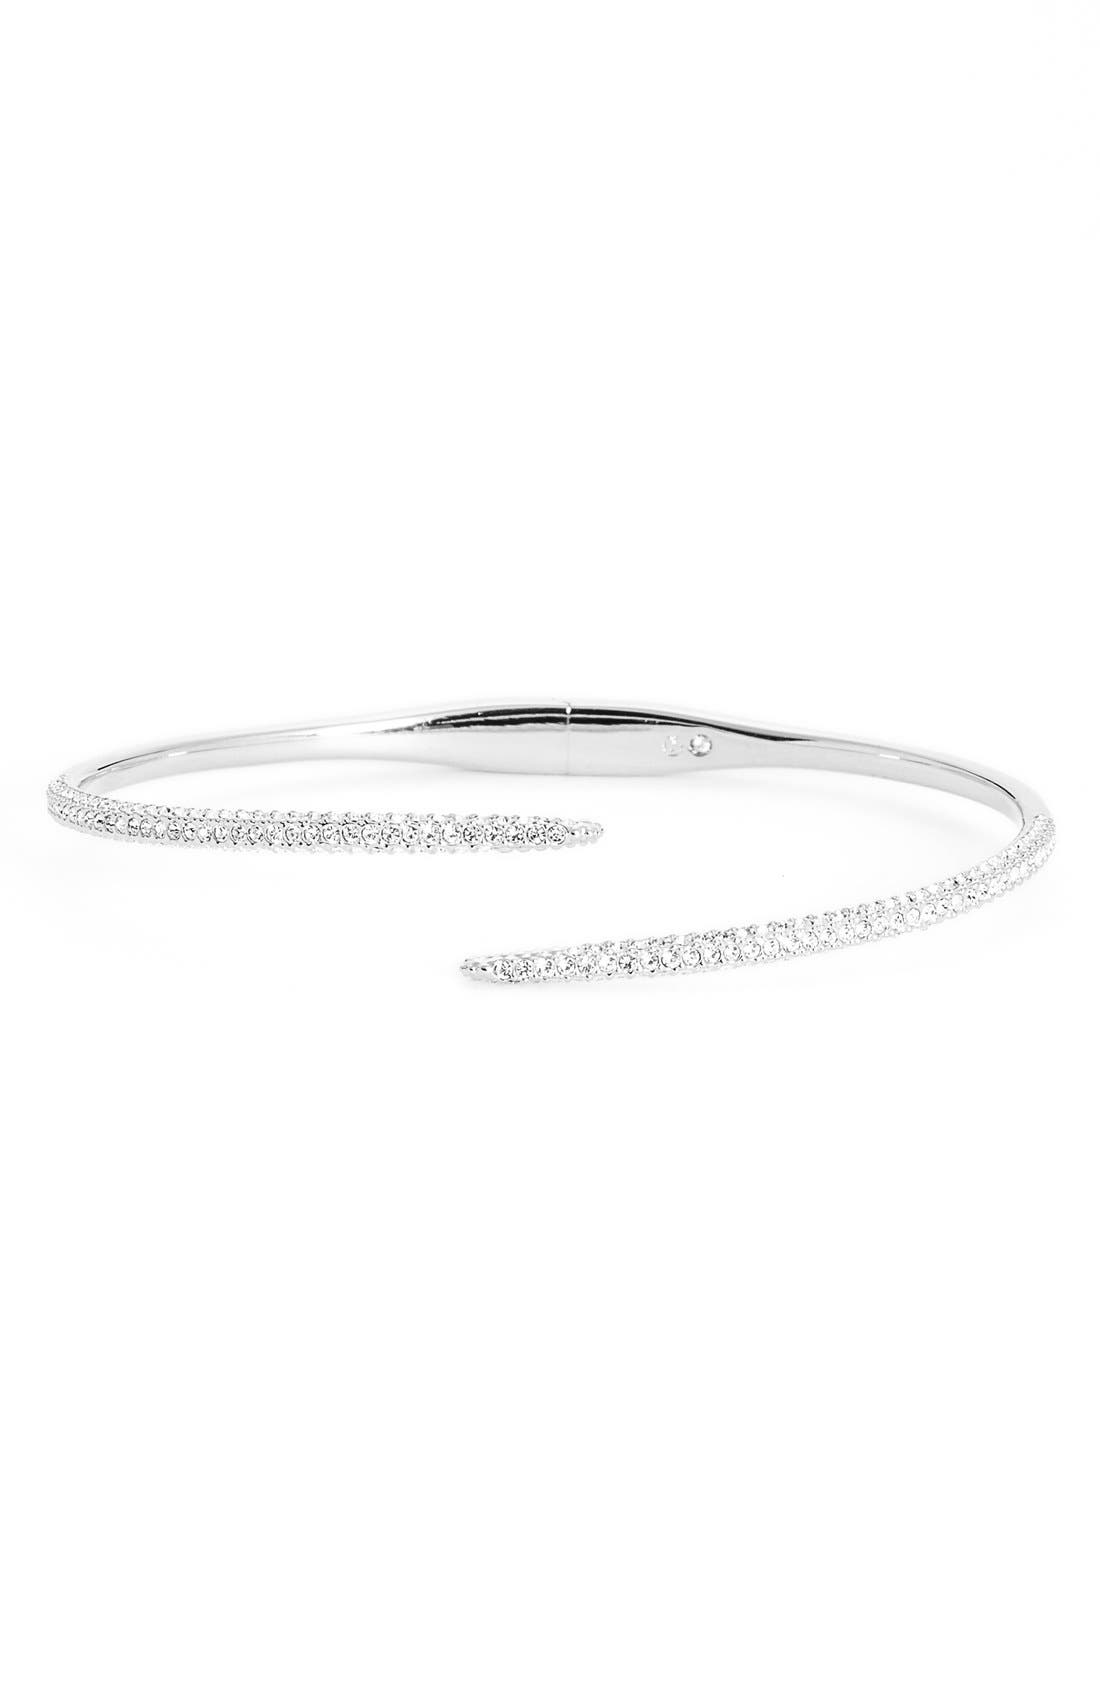 Alternate Image 1 Selected - Nadri Wrap Hinge Bangle